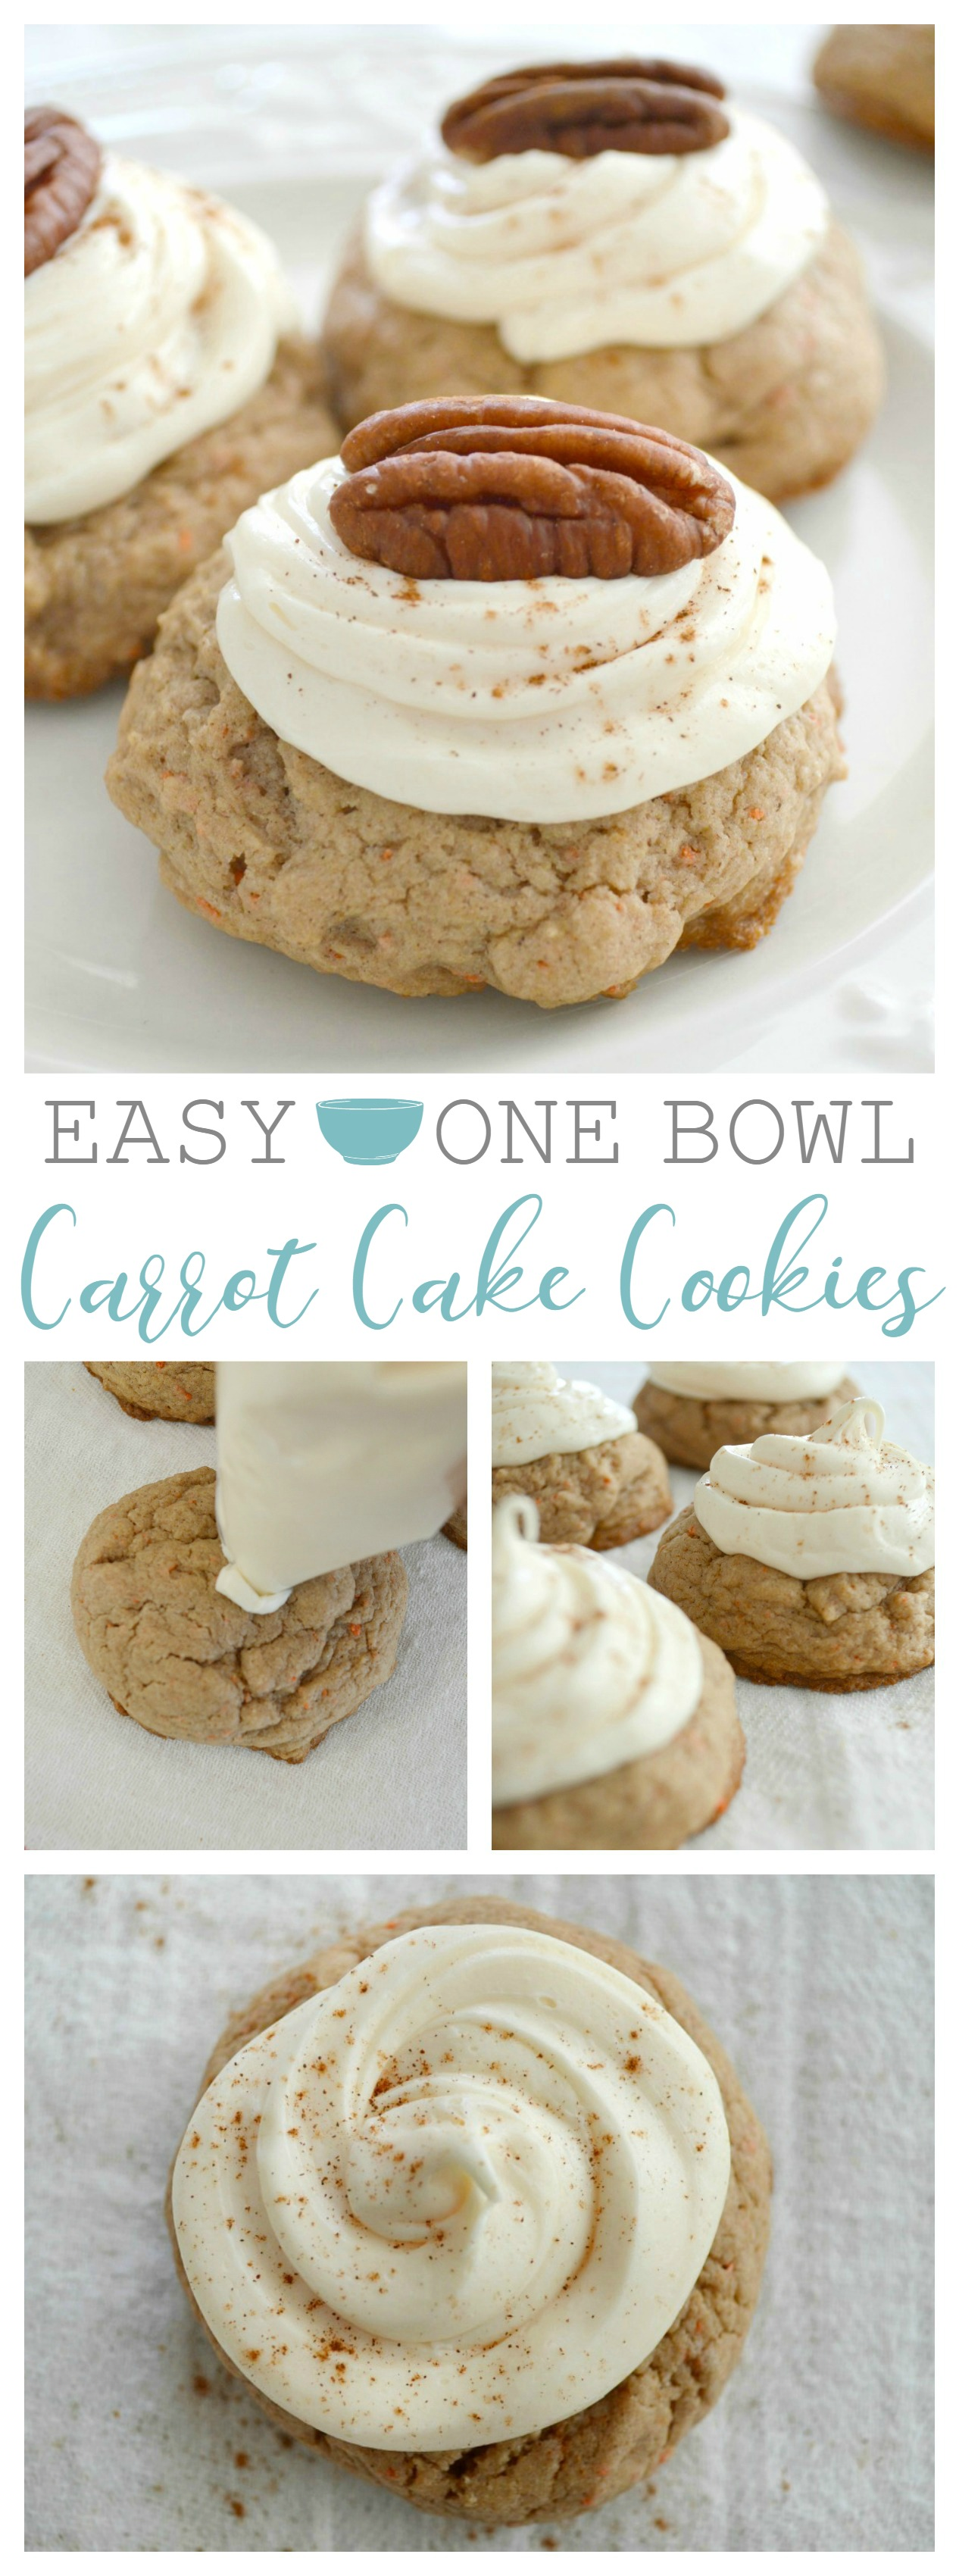 Easy One Bowl Carrot Cake Cookies